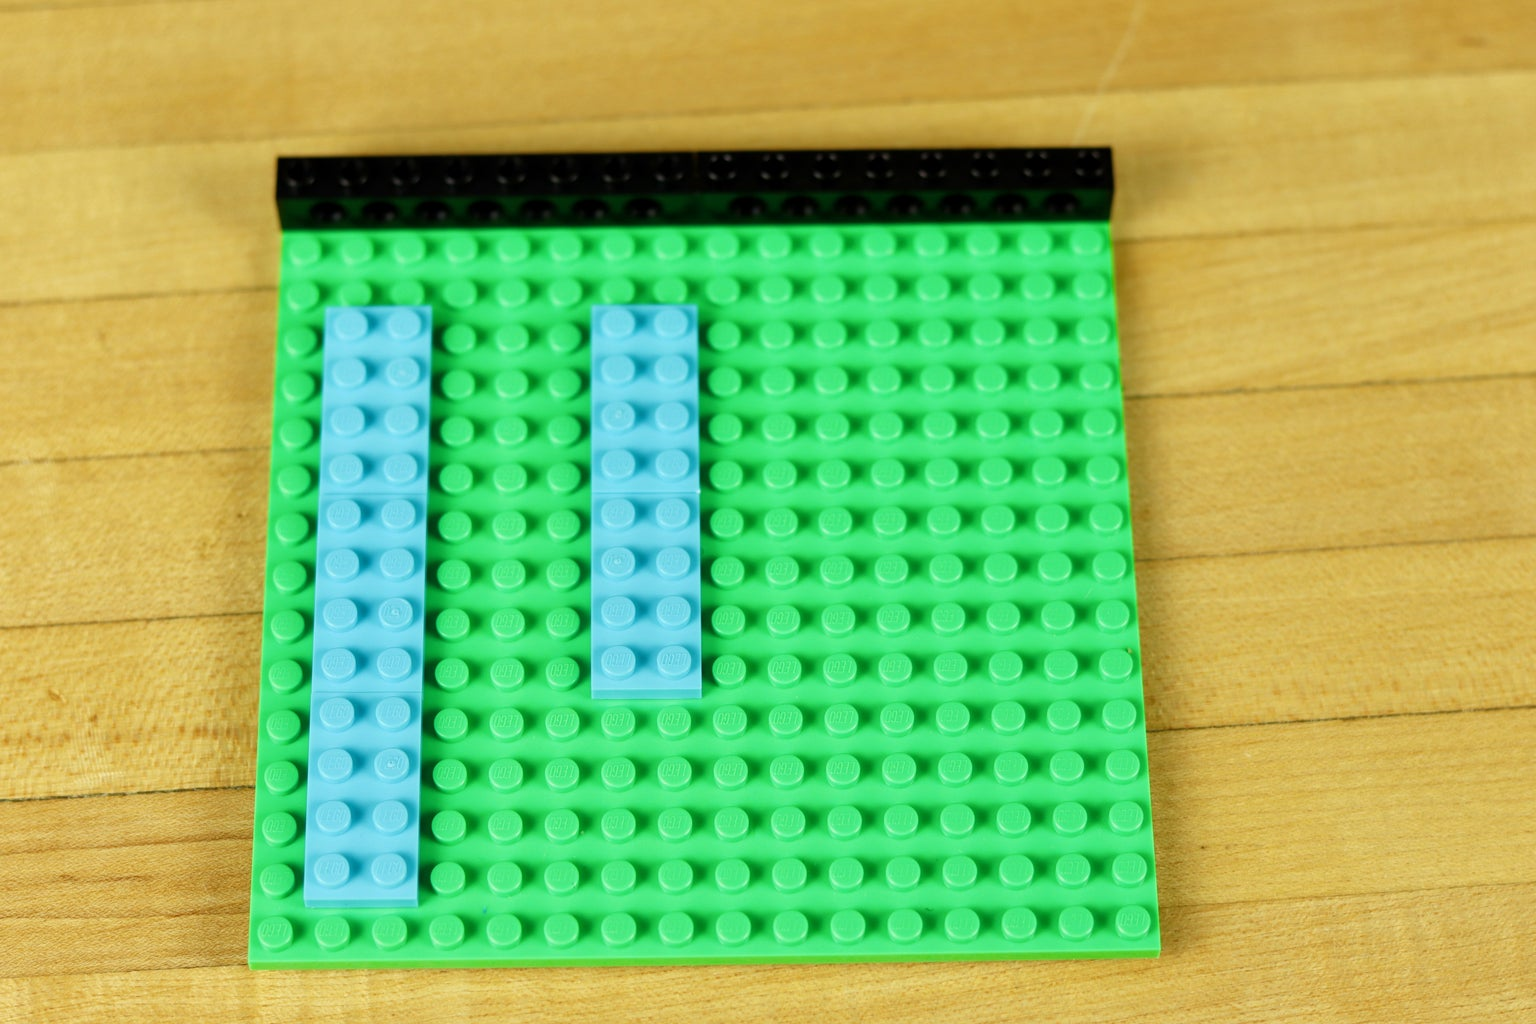 Lay Out LEGO and Electronics Components